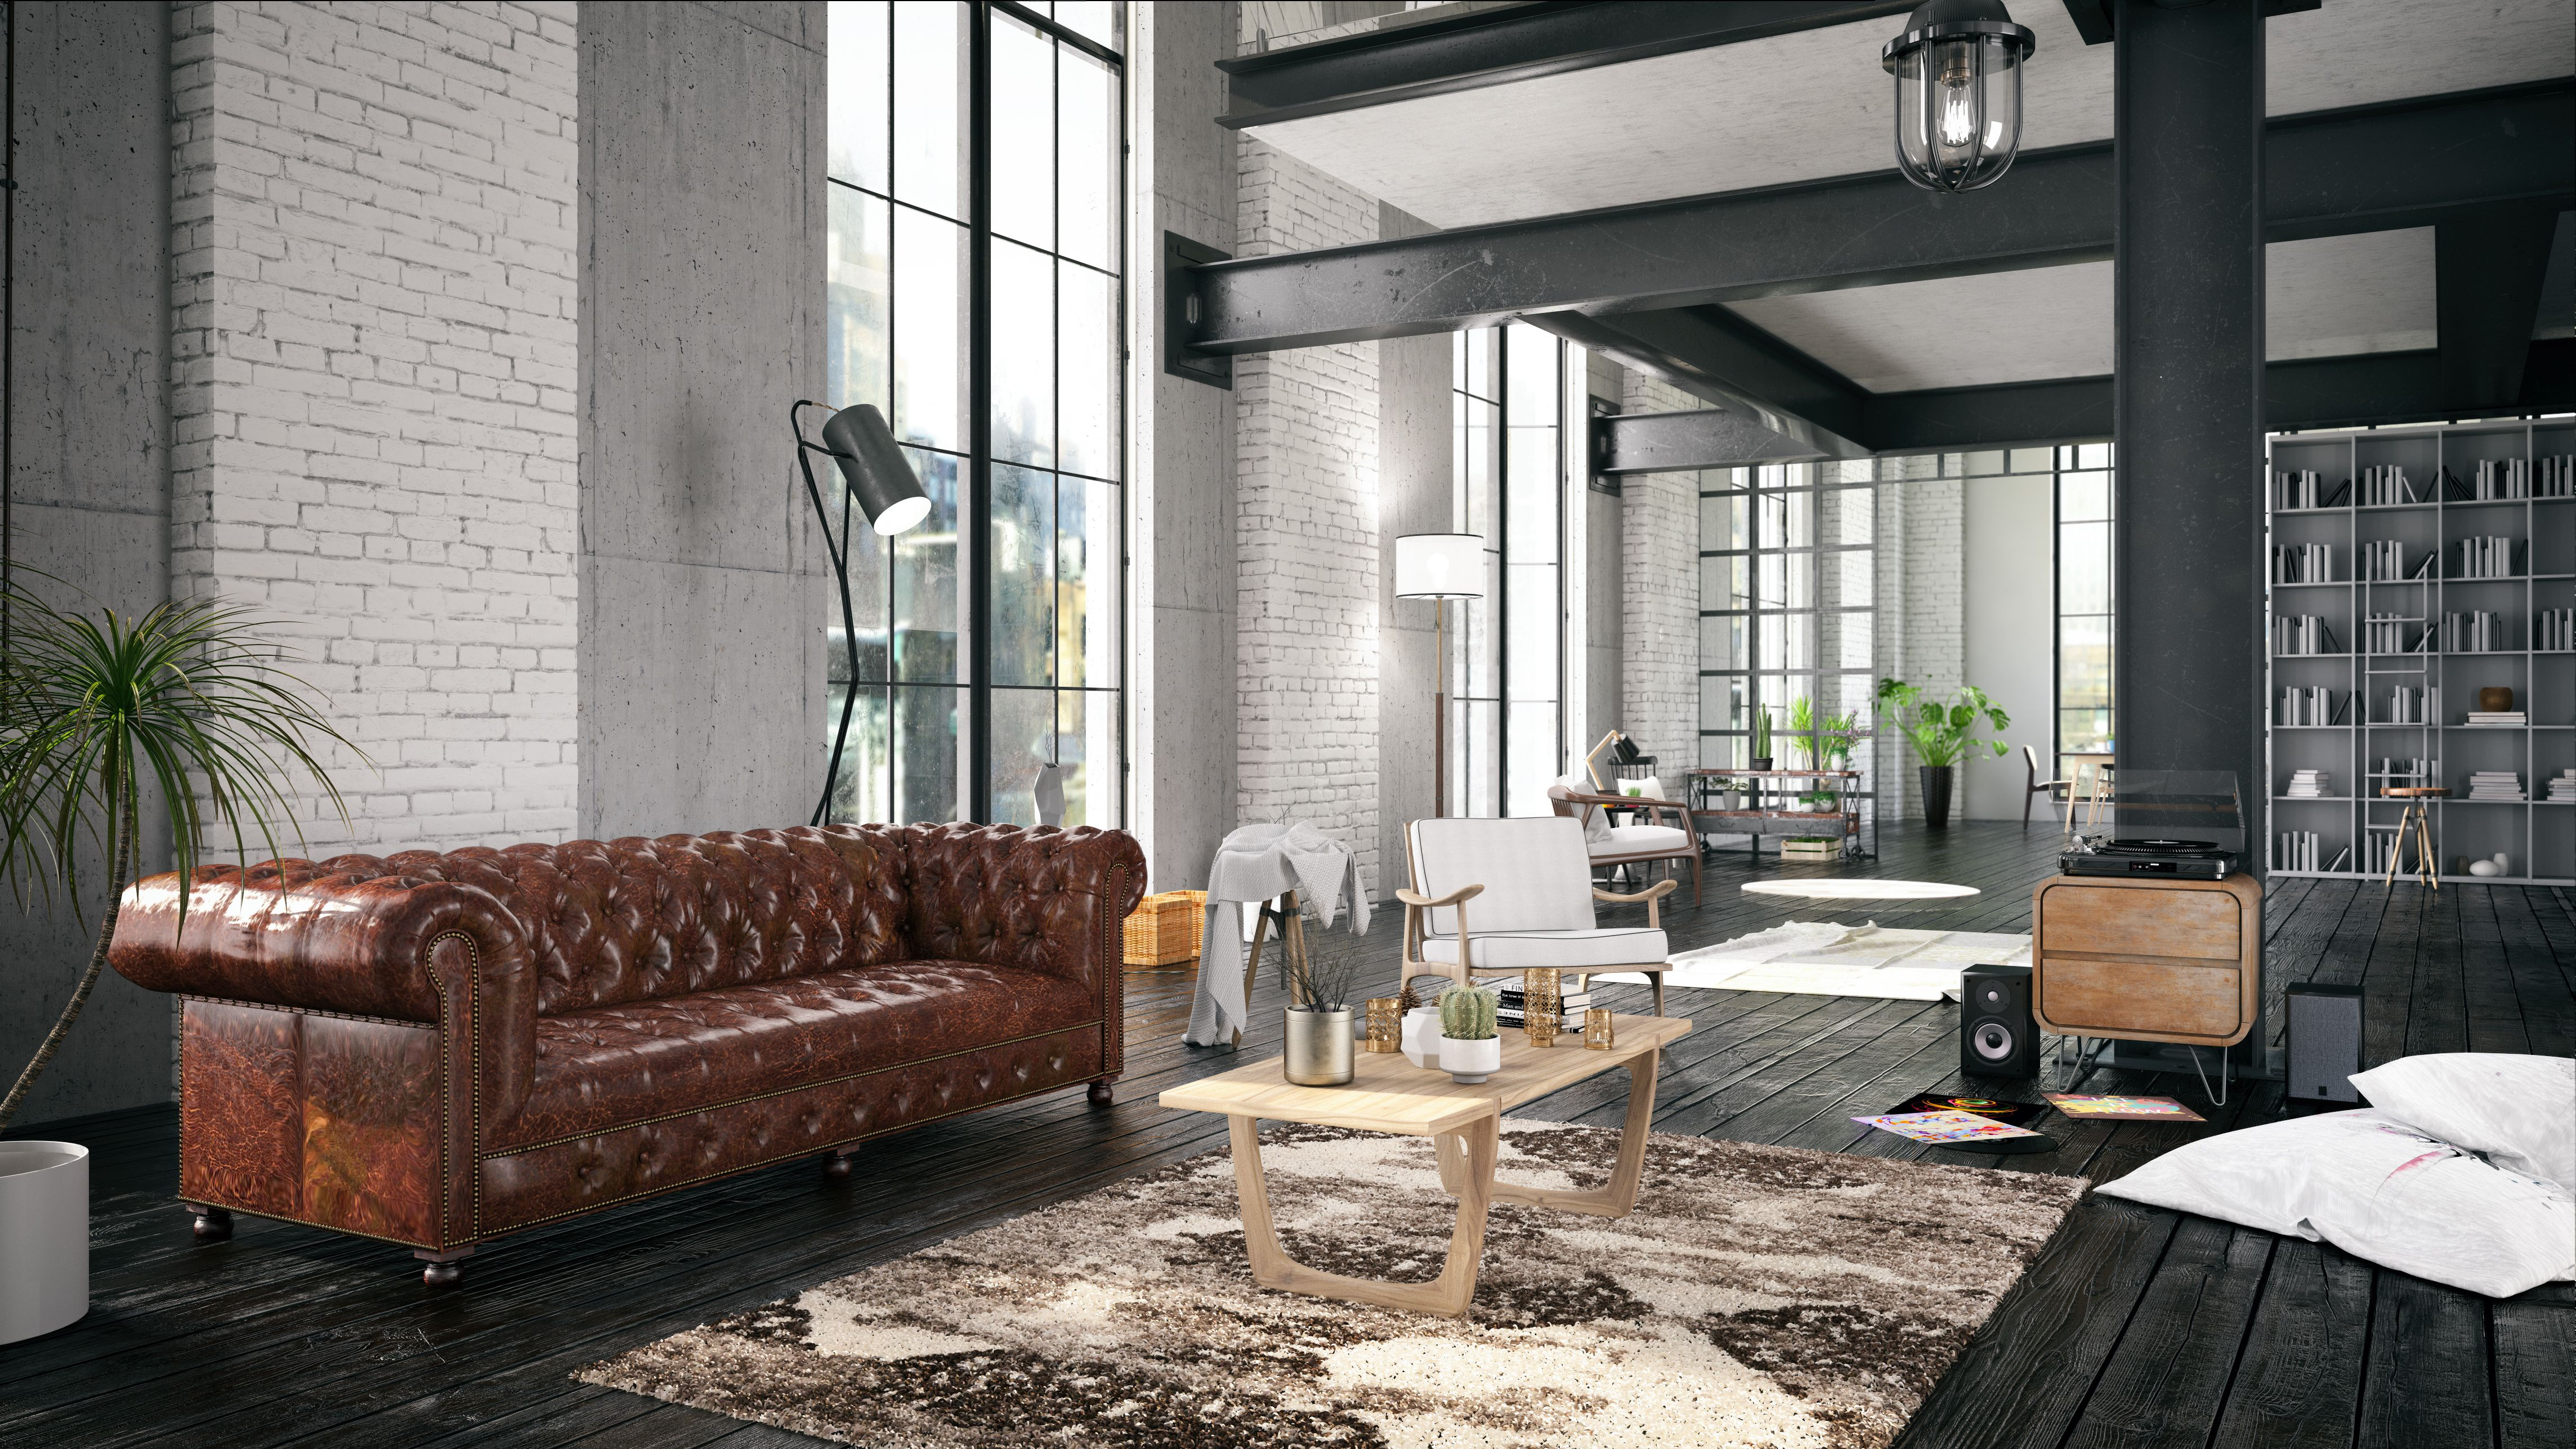 The Benefits Of Fabric Vs Leather Sofas